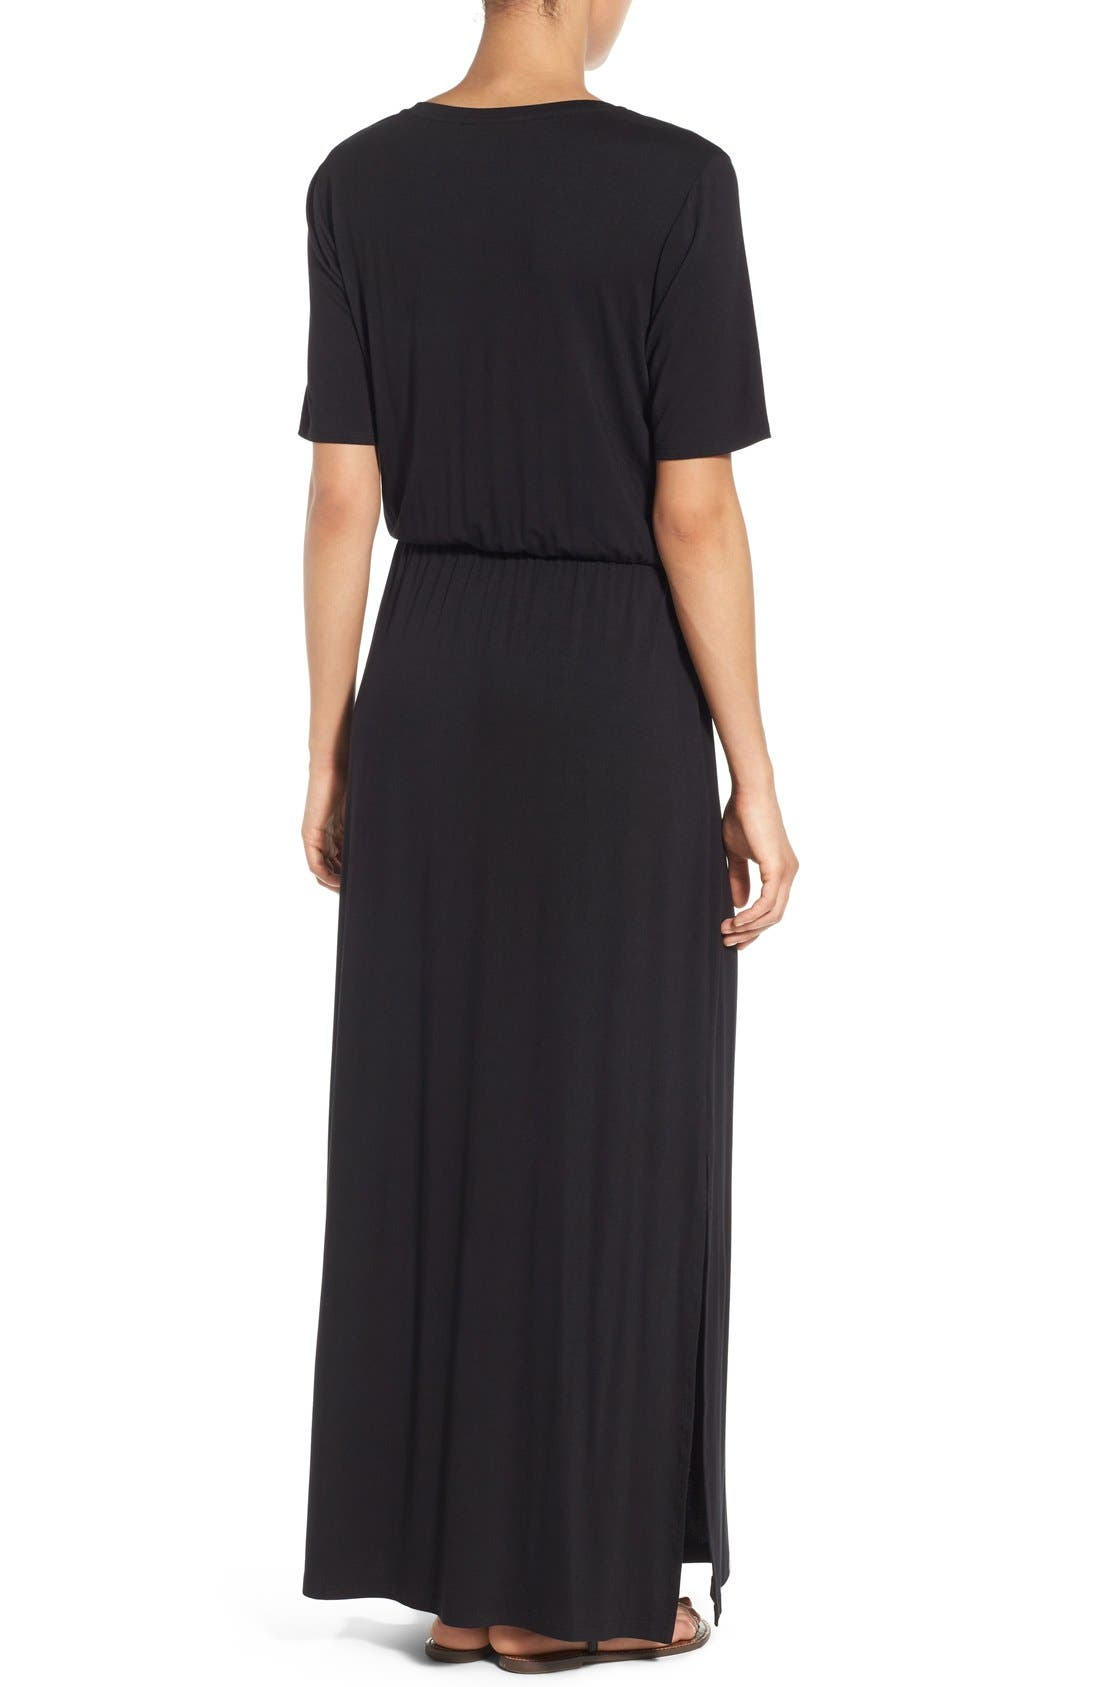 BOBEAU, Drawstring Waist Jersey Maxi Dress, Alternate thumbnail 4, color, 005